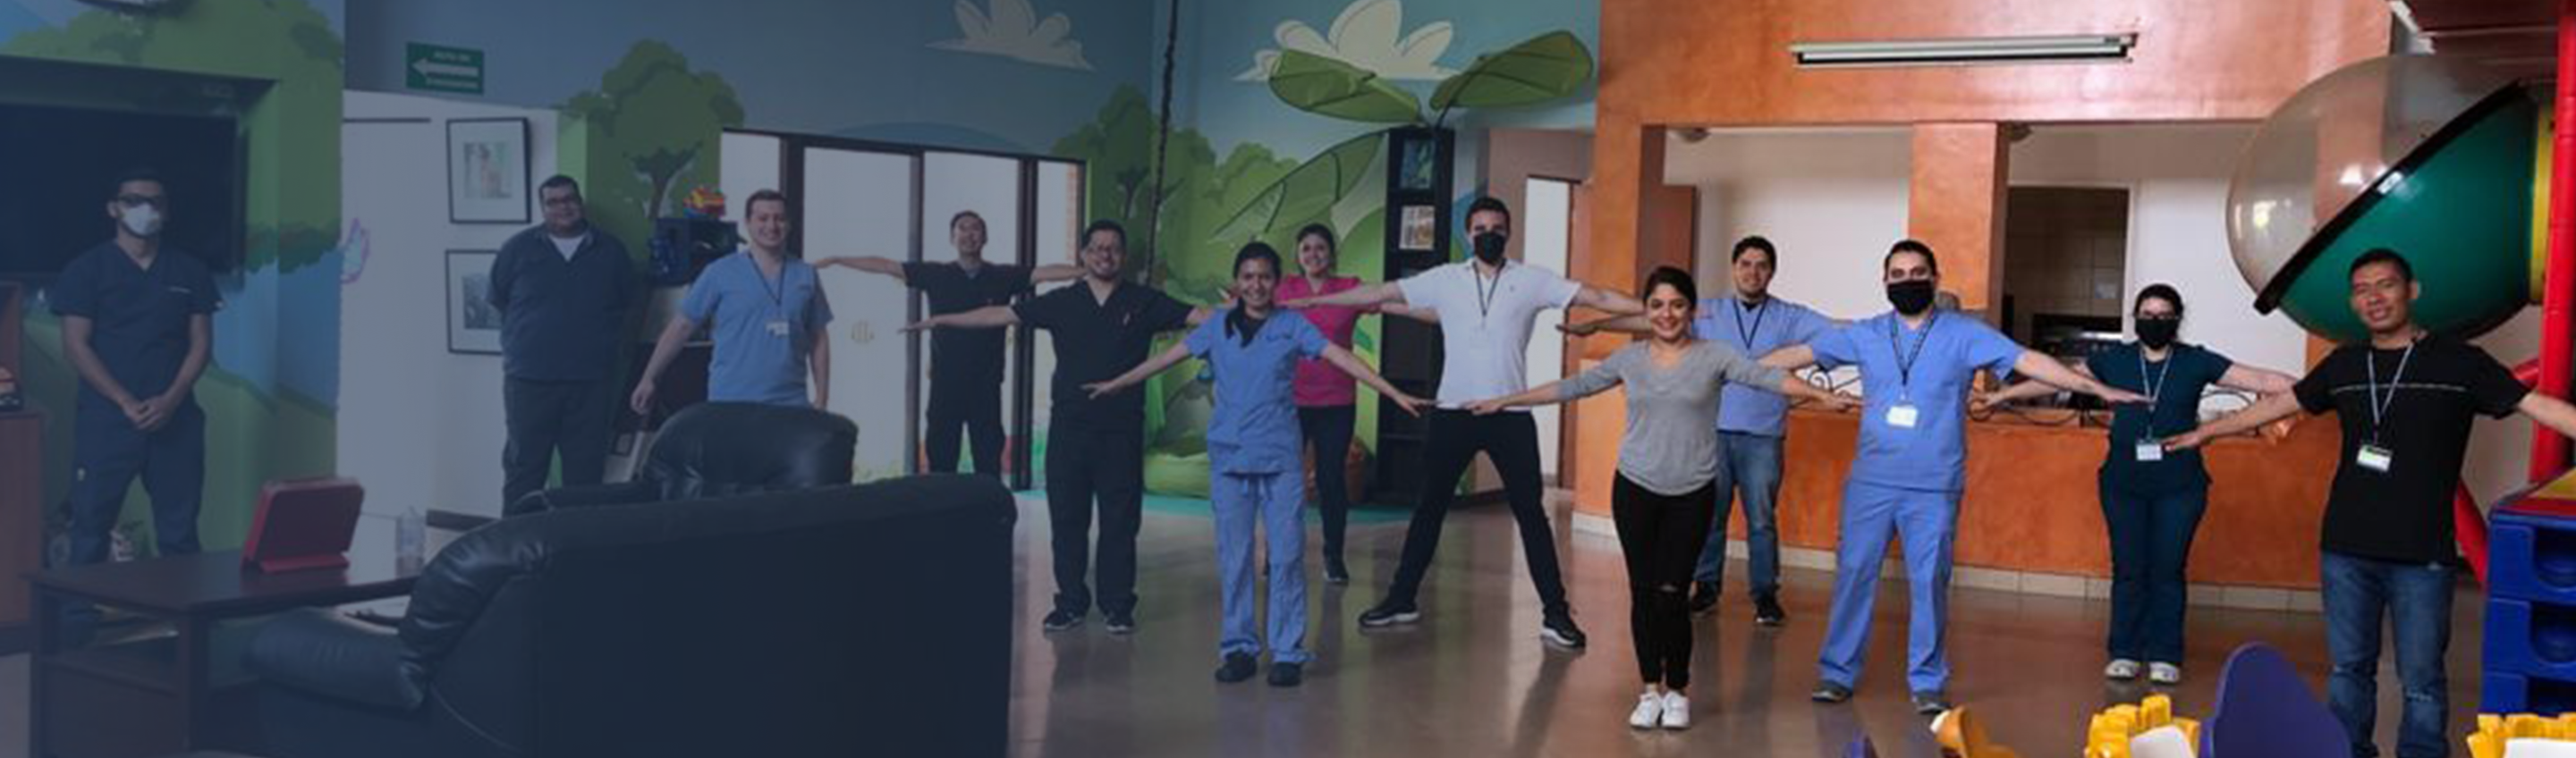 13 healthcare workers and administrators demonstrating social distancing, most wearing face masks and holding arms outstretched to show at least 6 feet of personal space